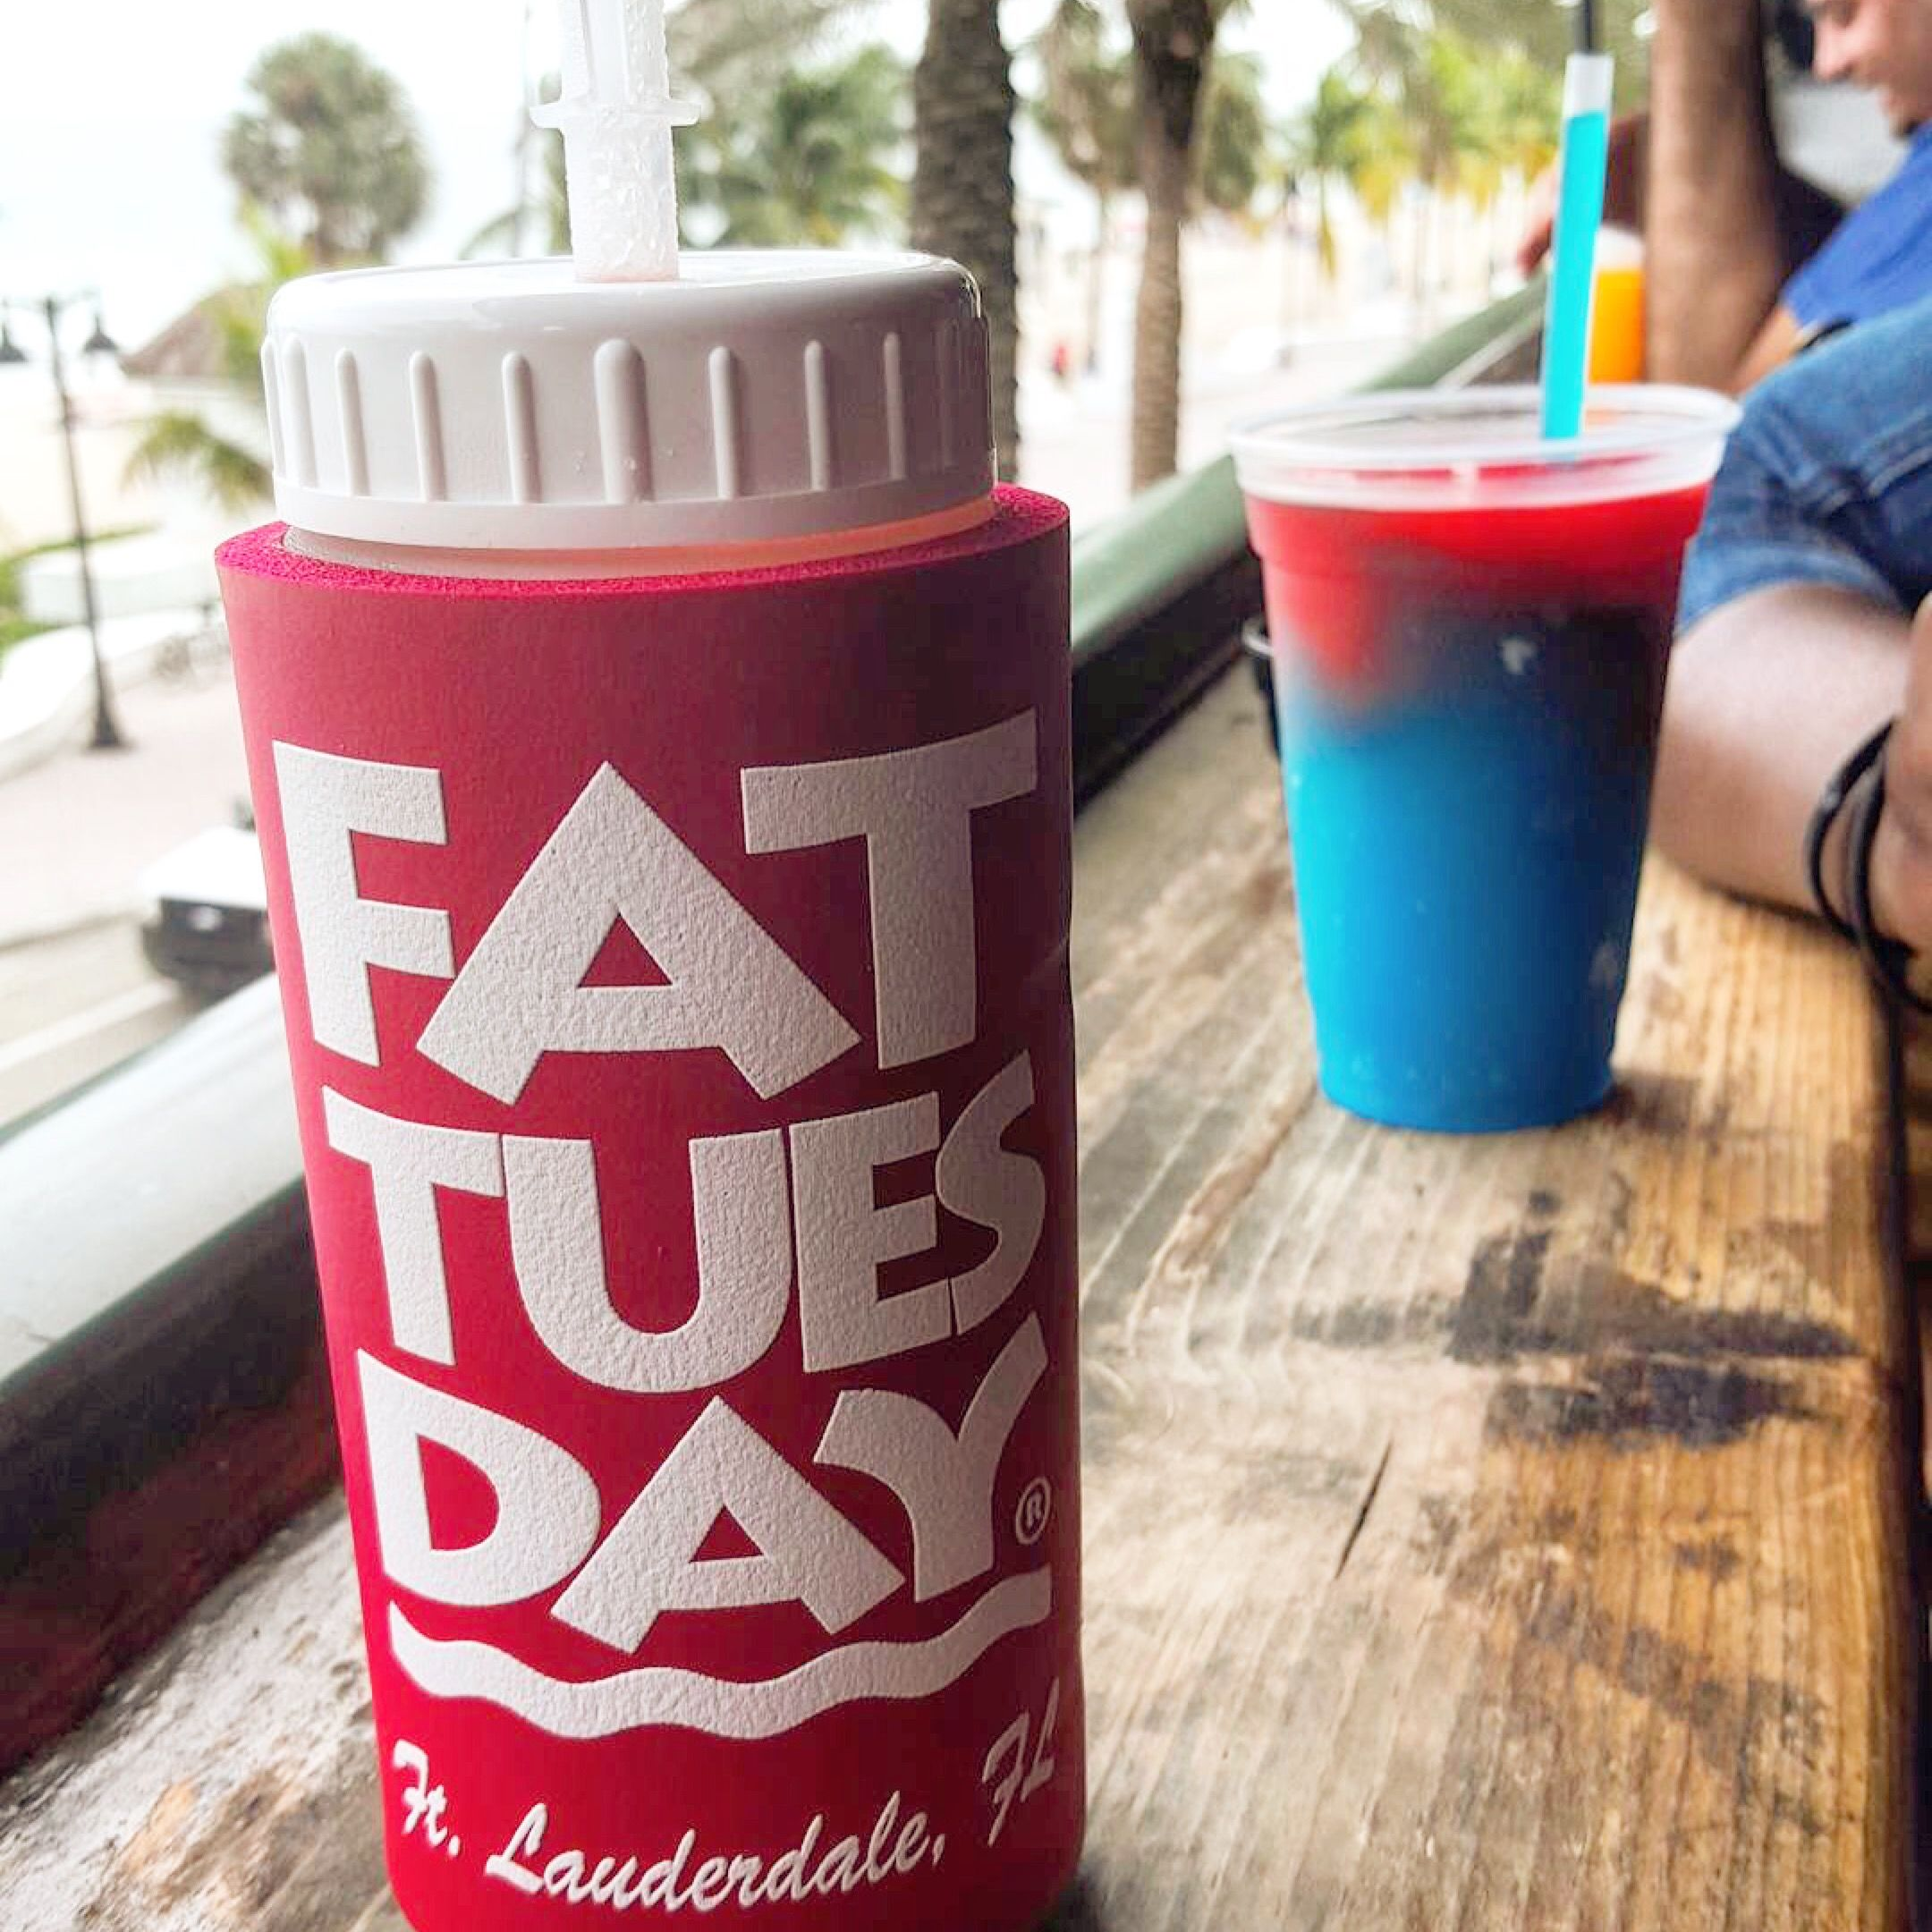 Friday is back like a long lost friend!  **SUPER AWESOME pic by sinaswee #fattuesday #daiquirifriday #tgidf